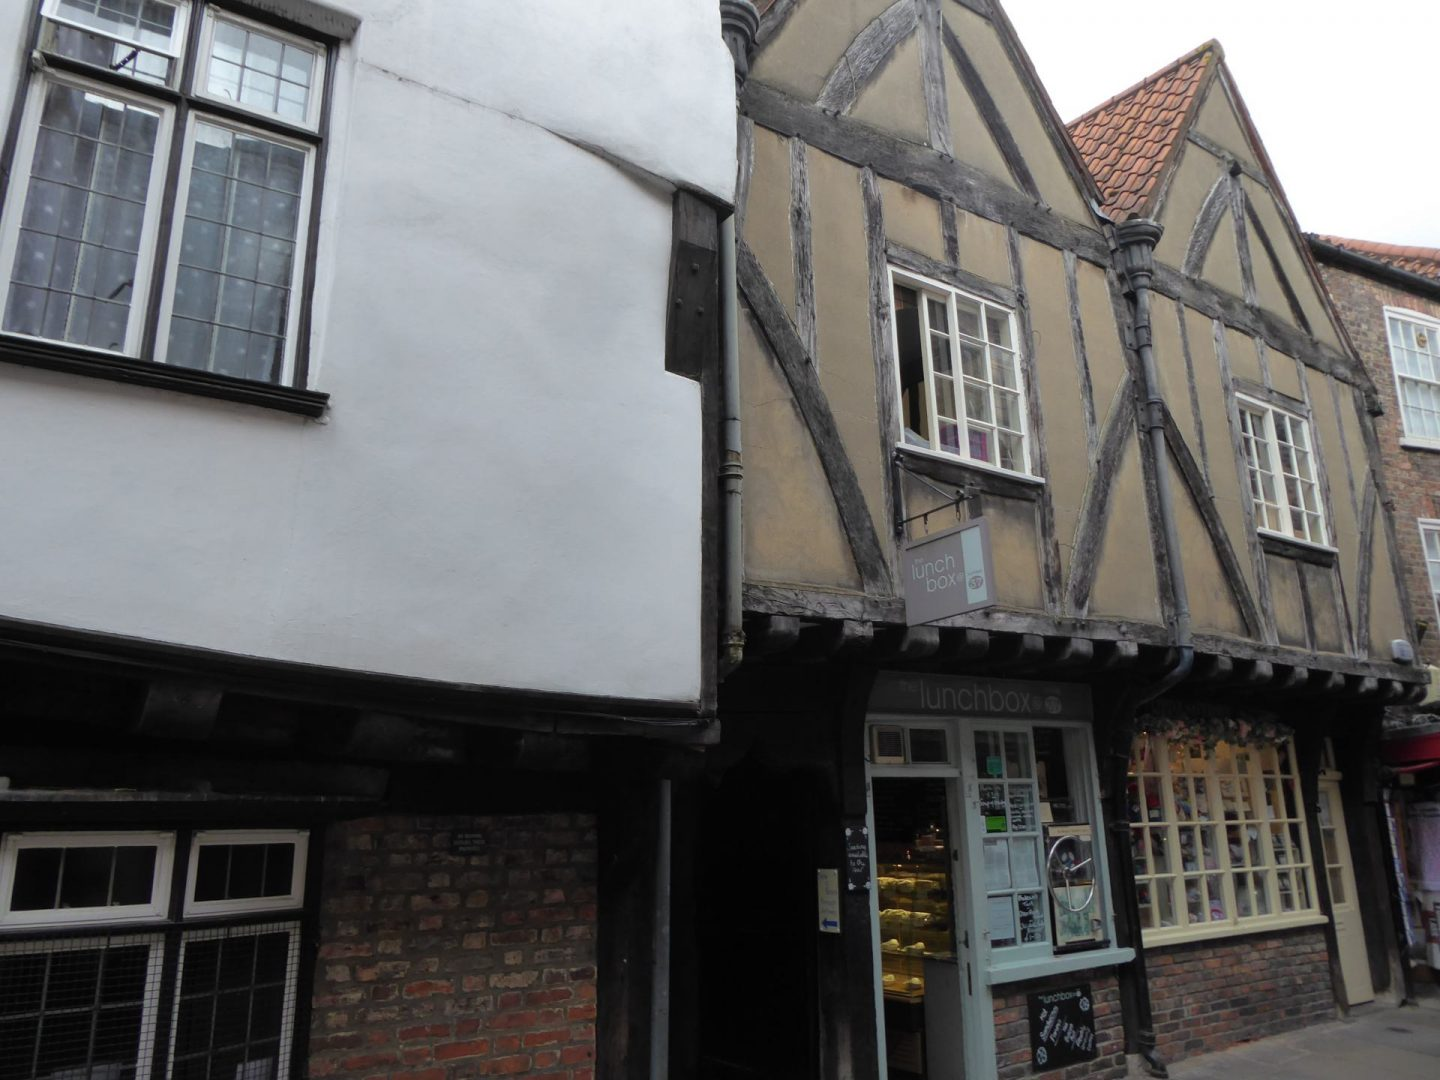 Old buildings in the Shambles